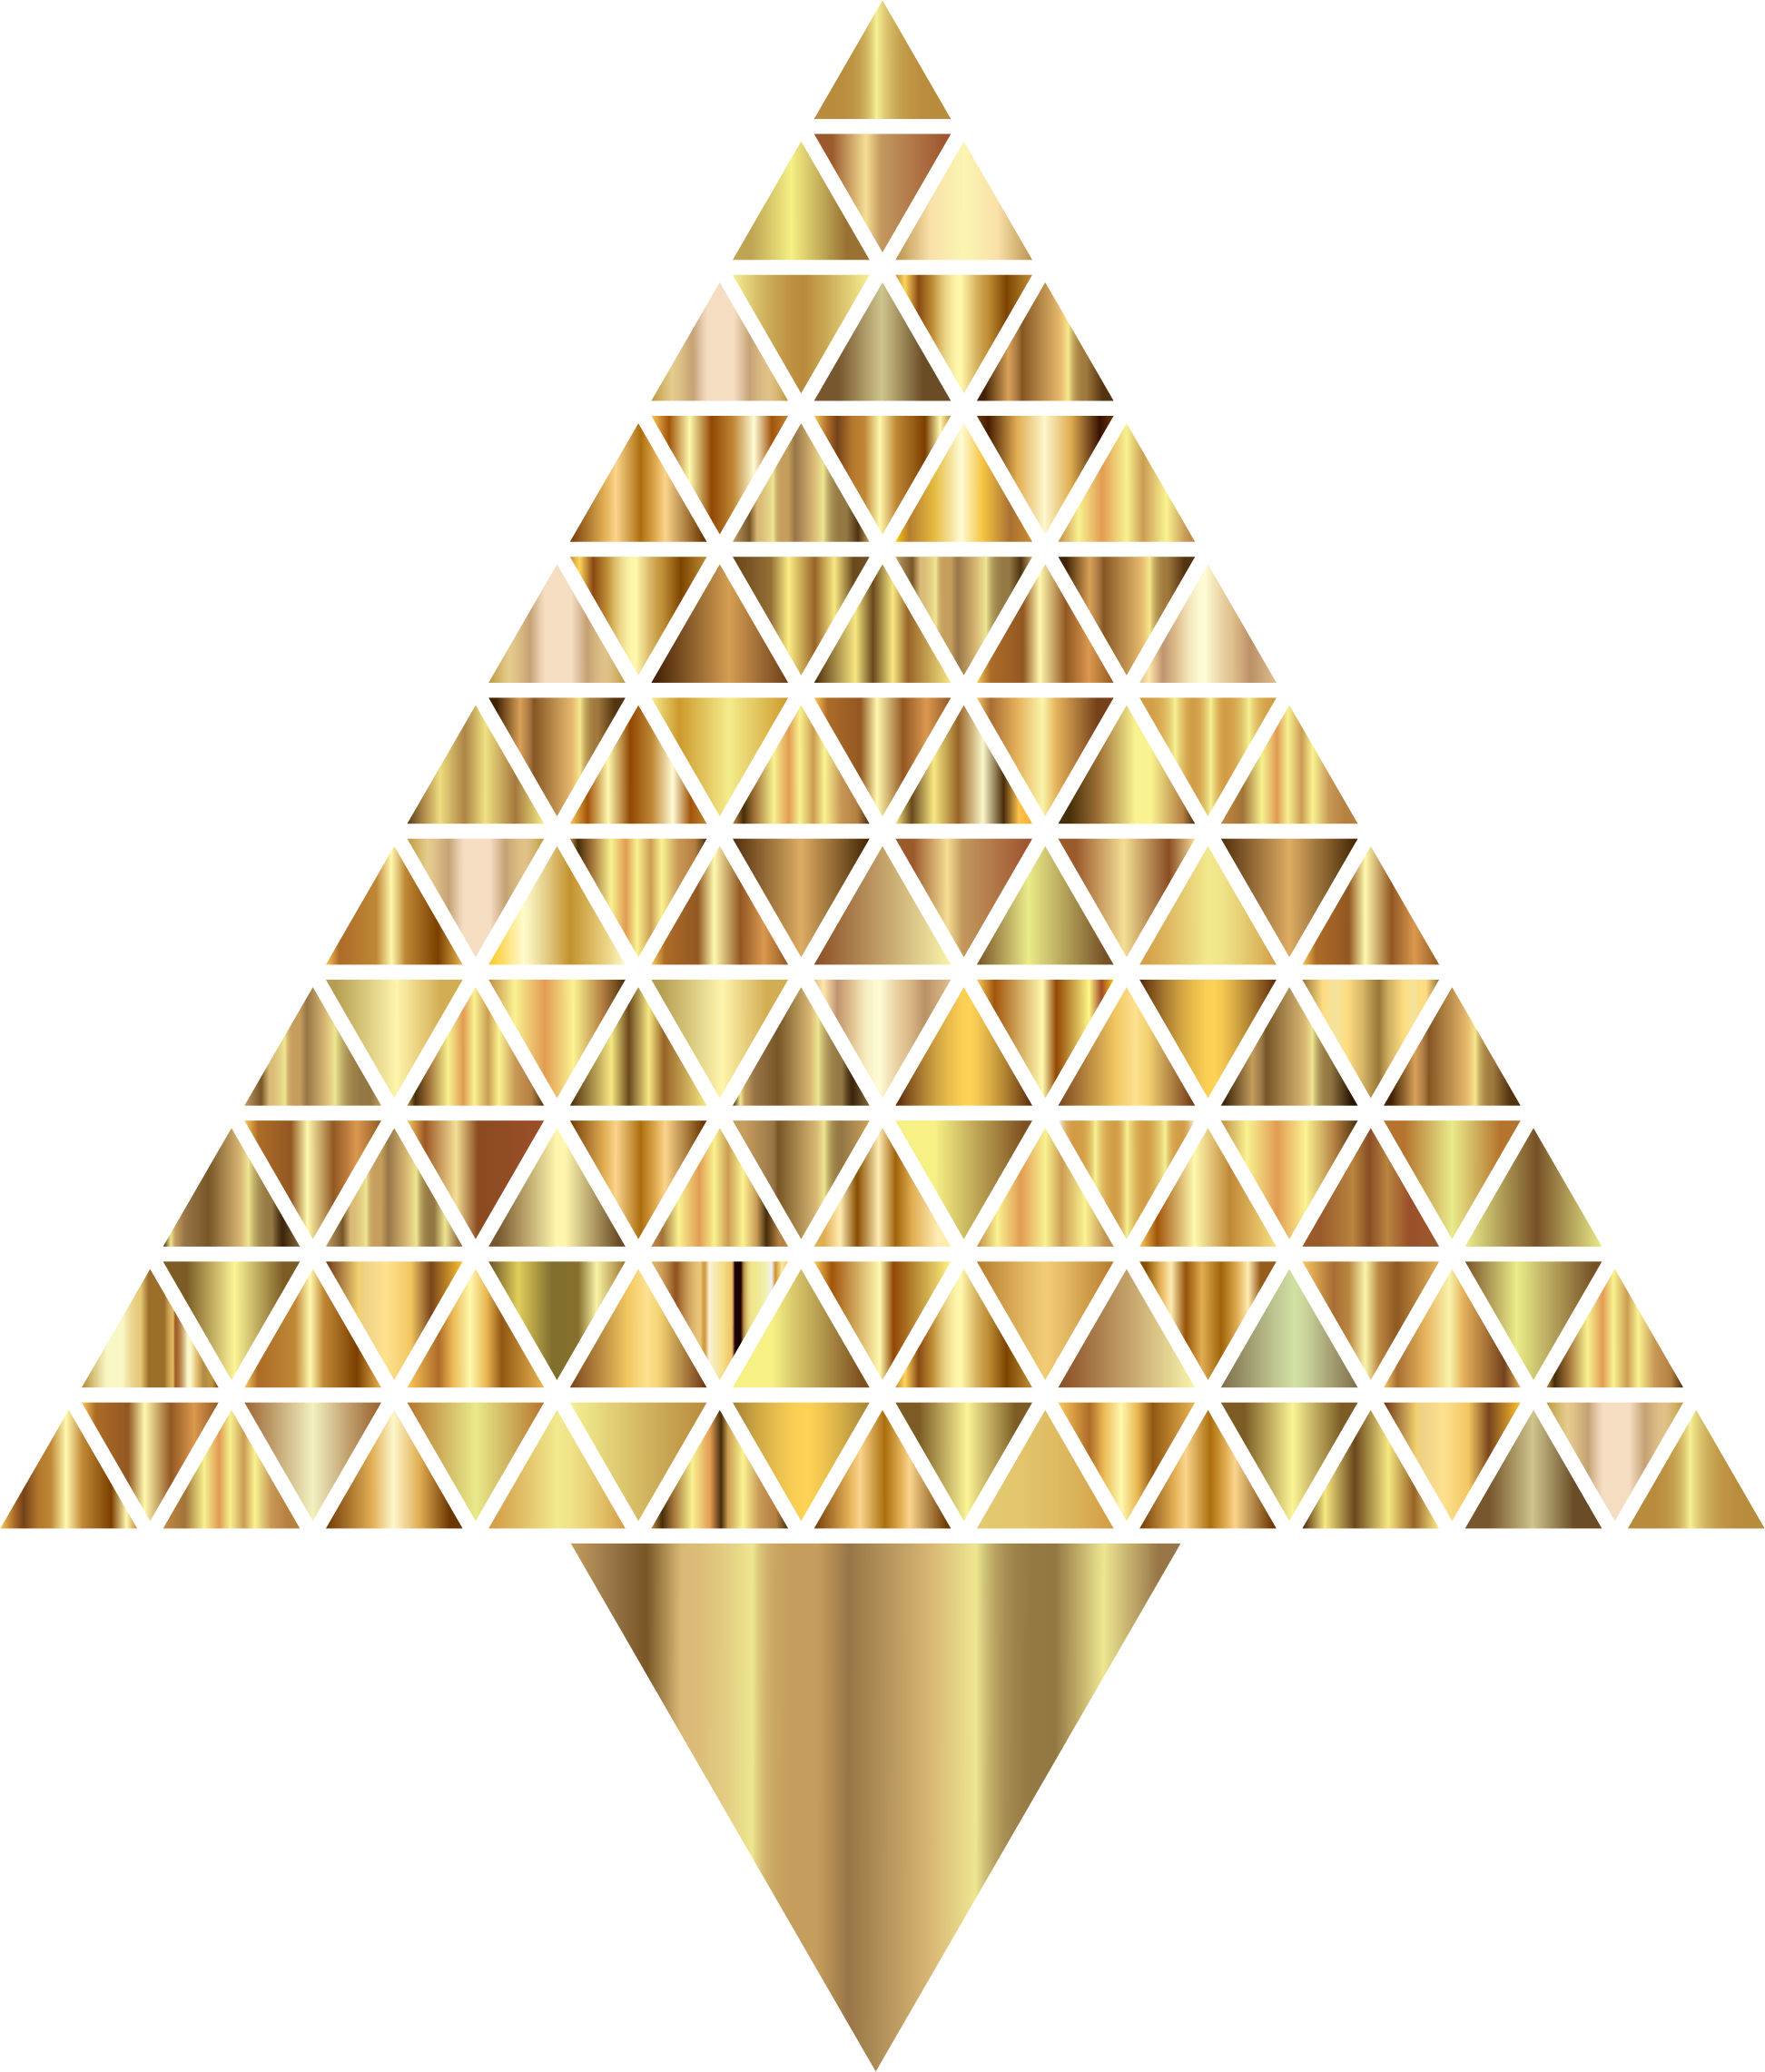 Prismatic Abstract Triangular Christmas Tree 8 by GDJ